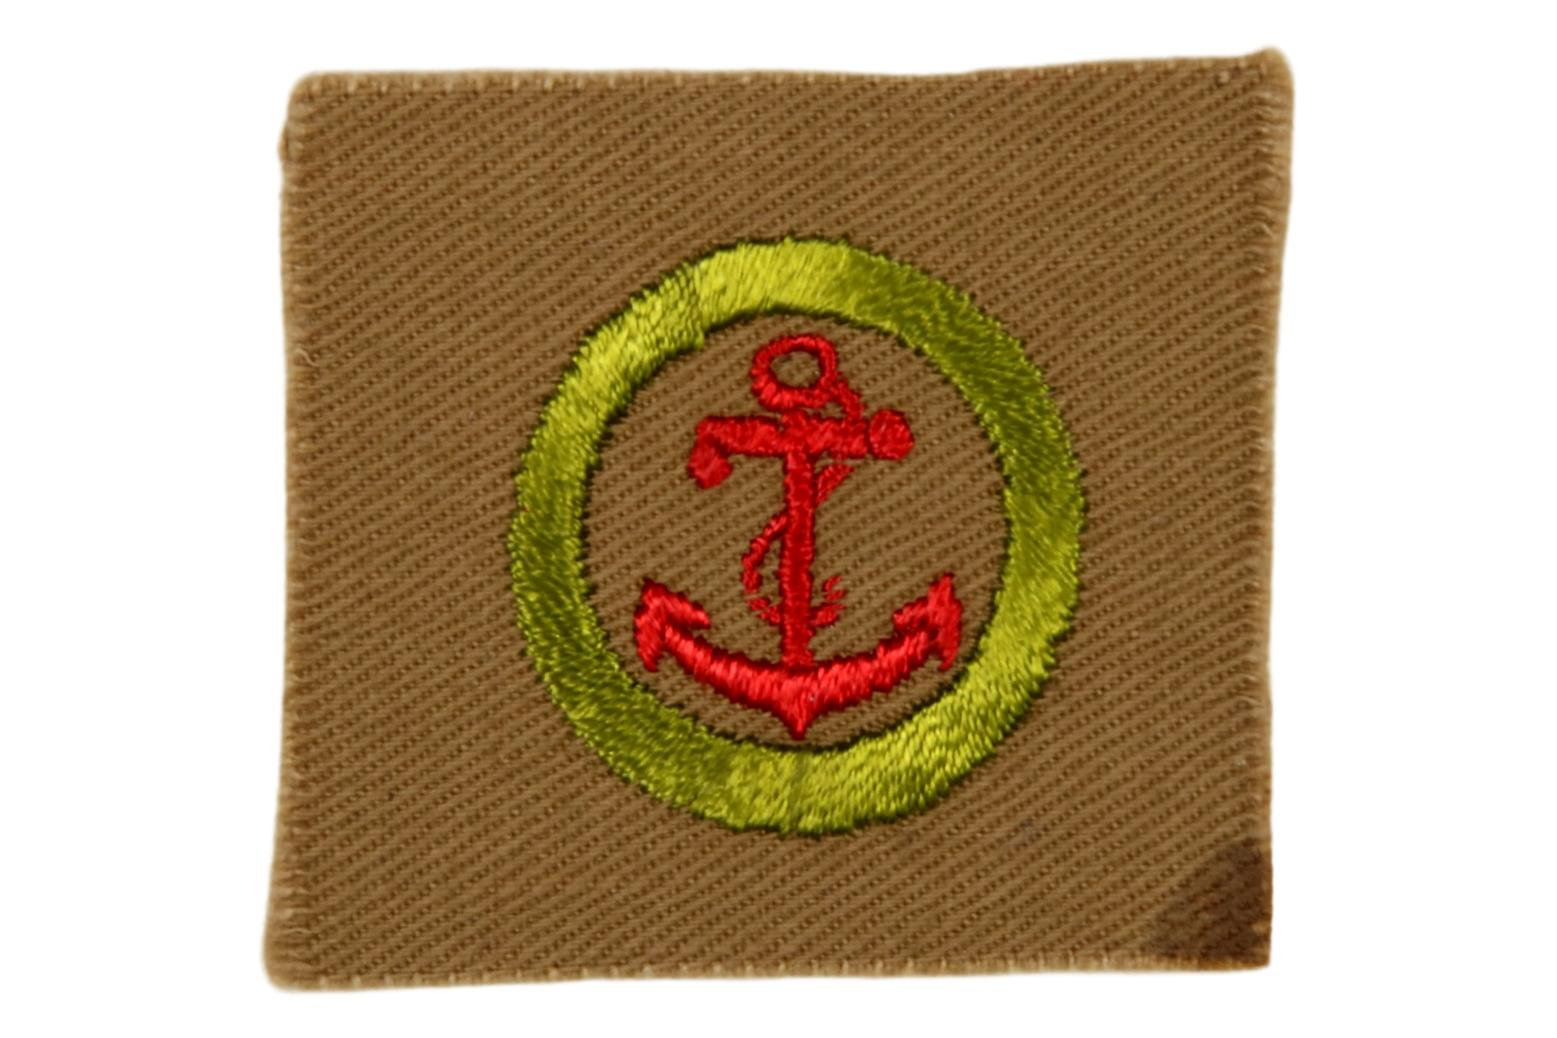 Seamanship MB Square Tan